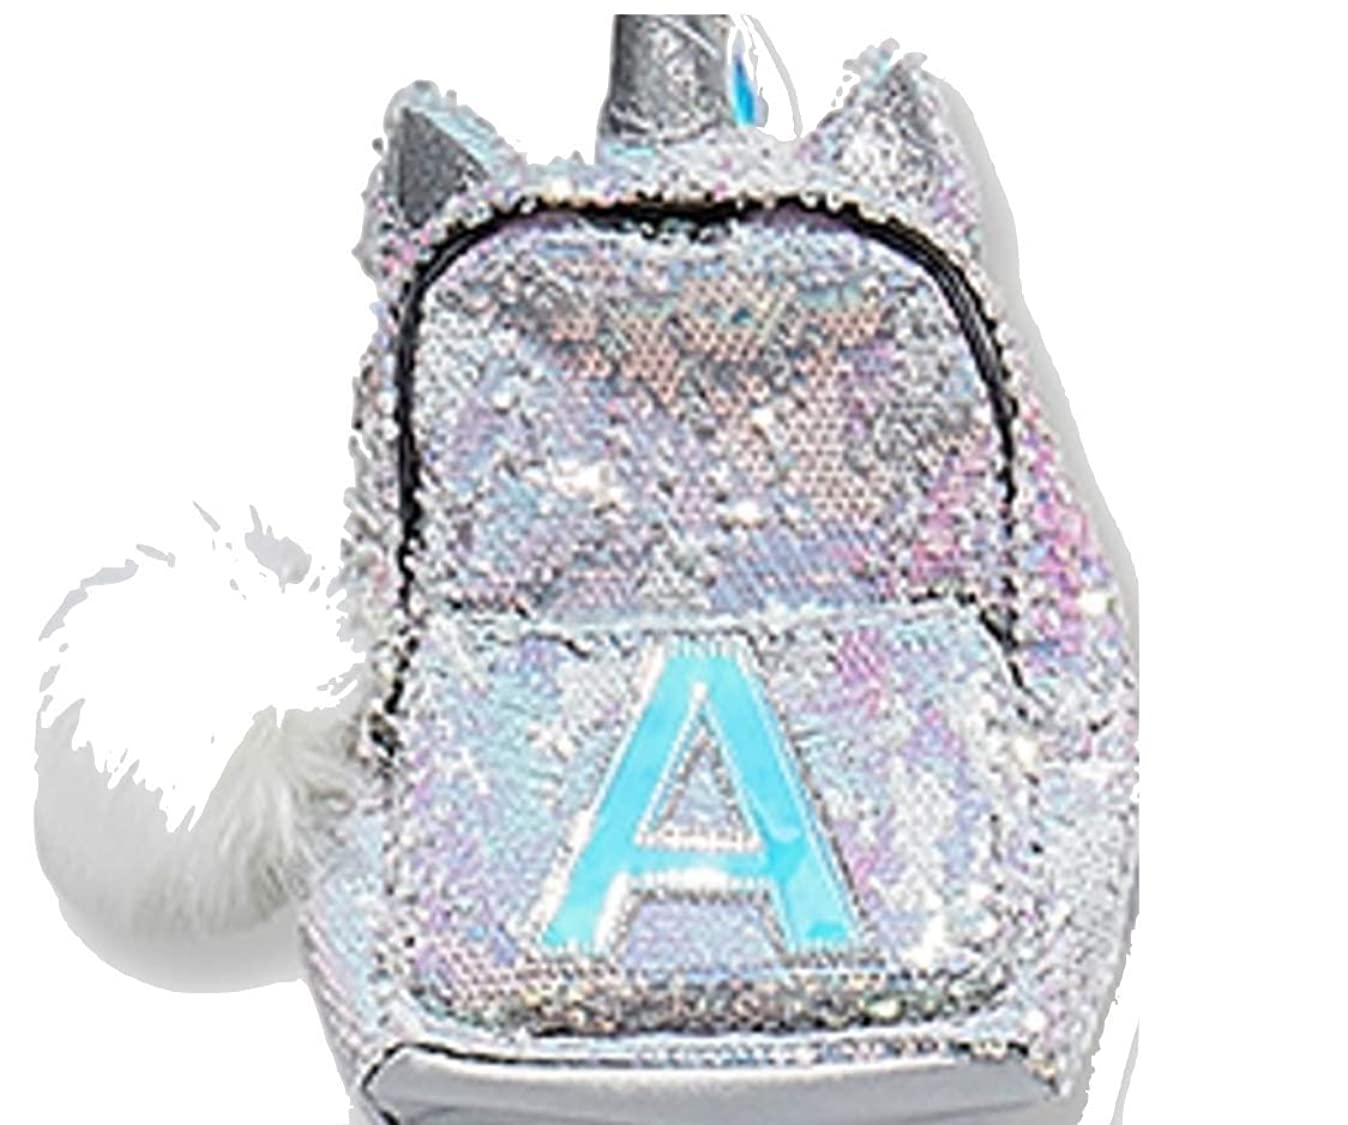 Justice Justice Girls Initial Unicorn Flip Sequin Mini Backpack Letter (A) e1563392259